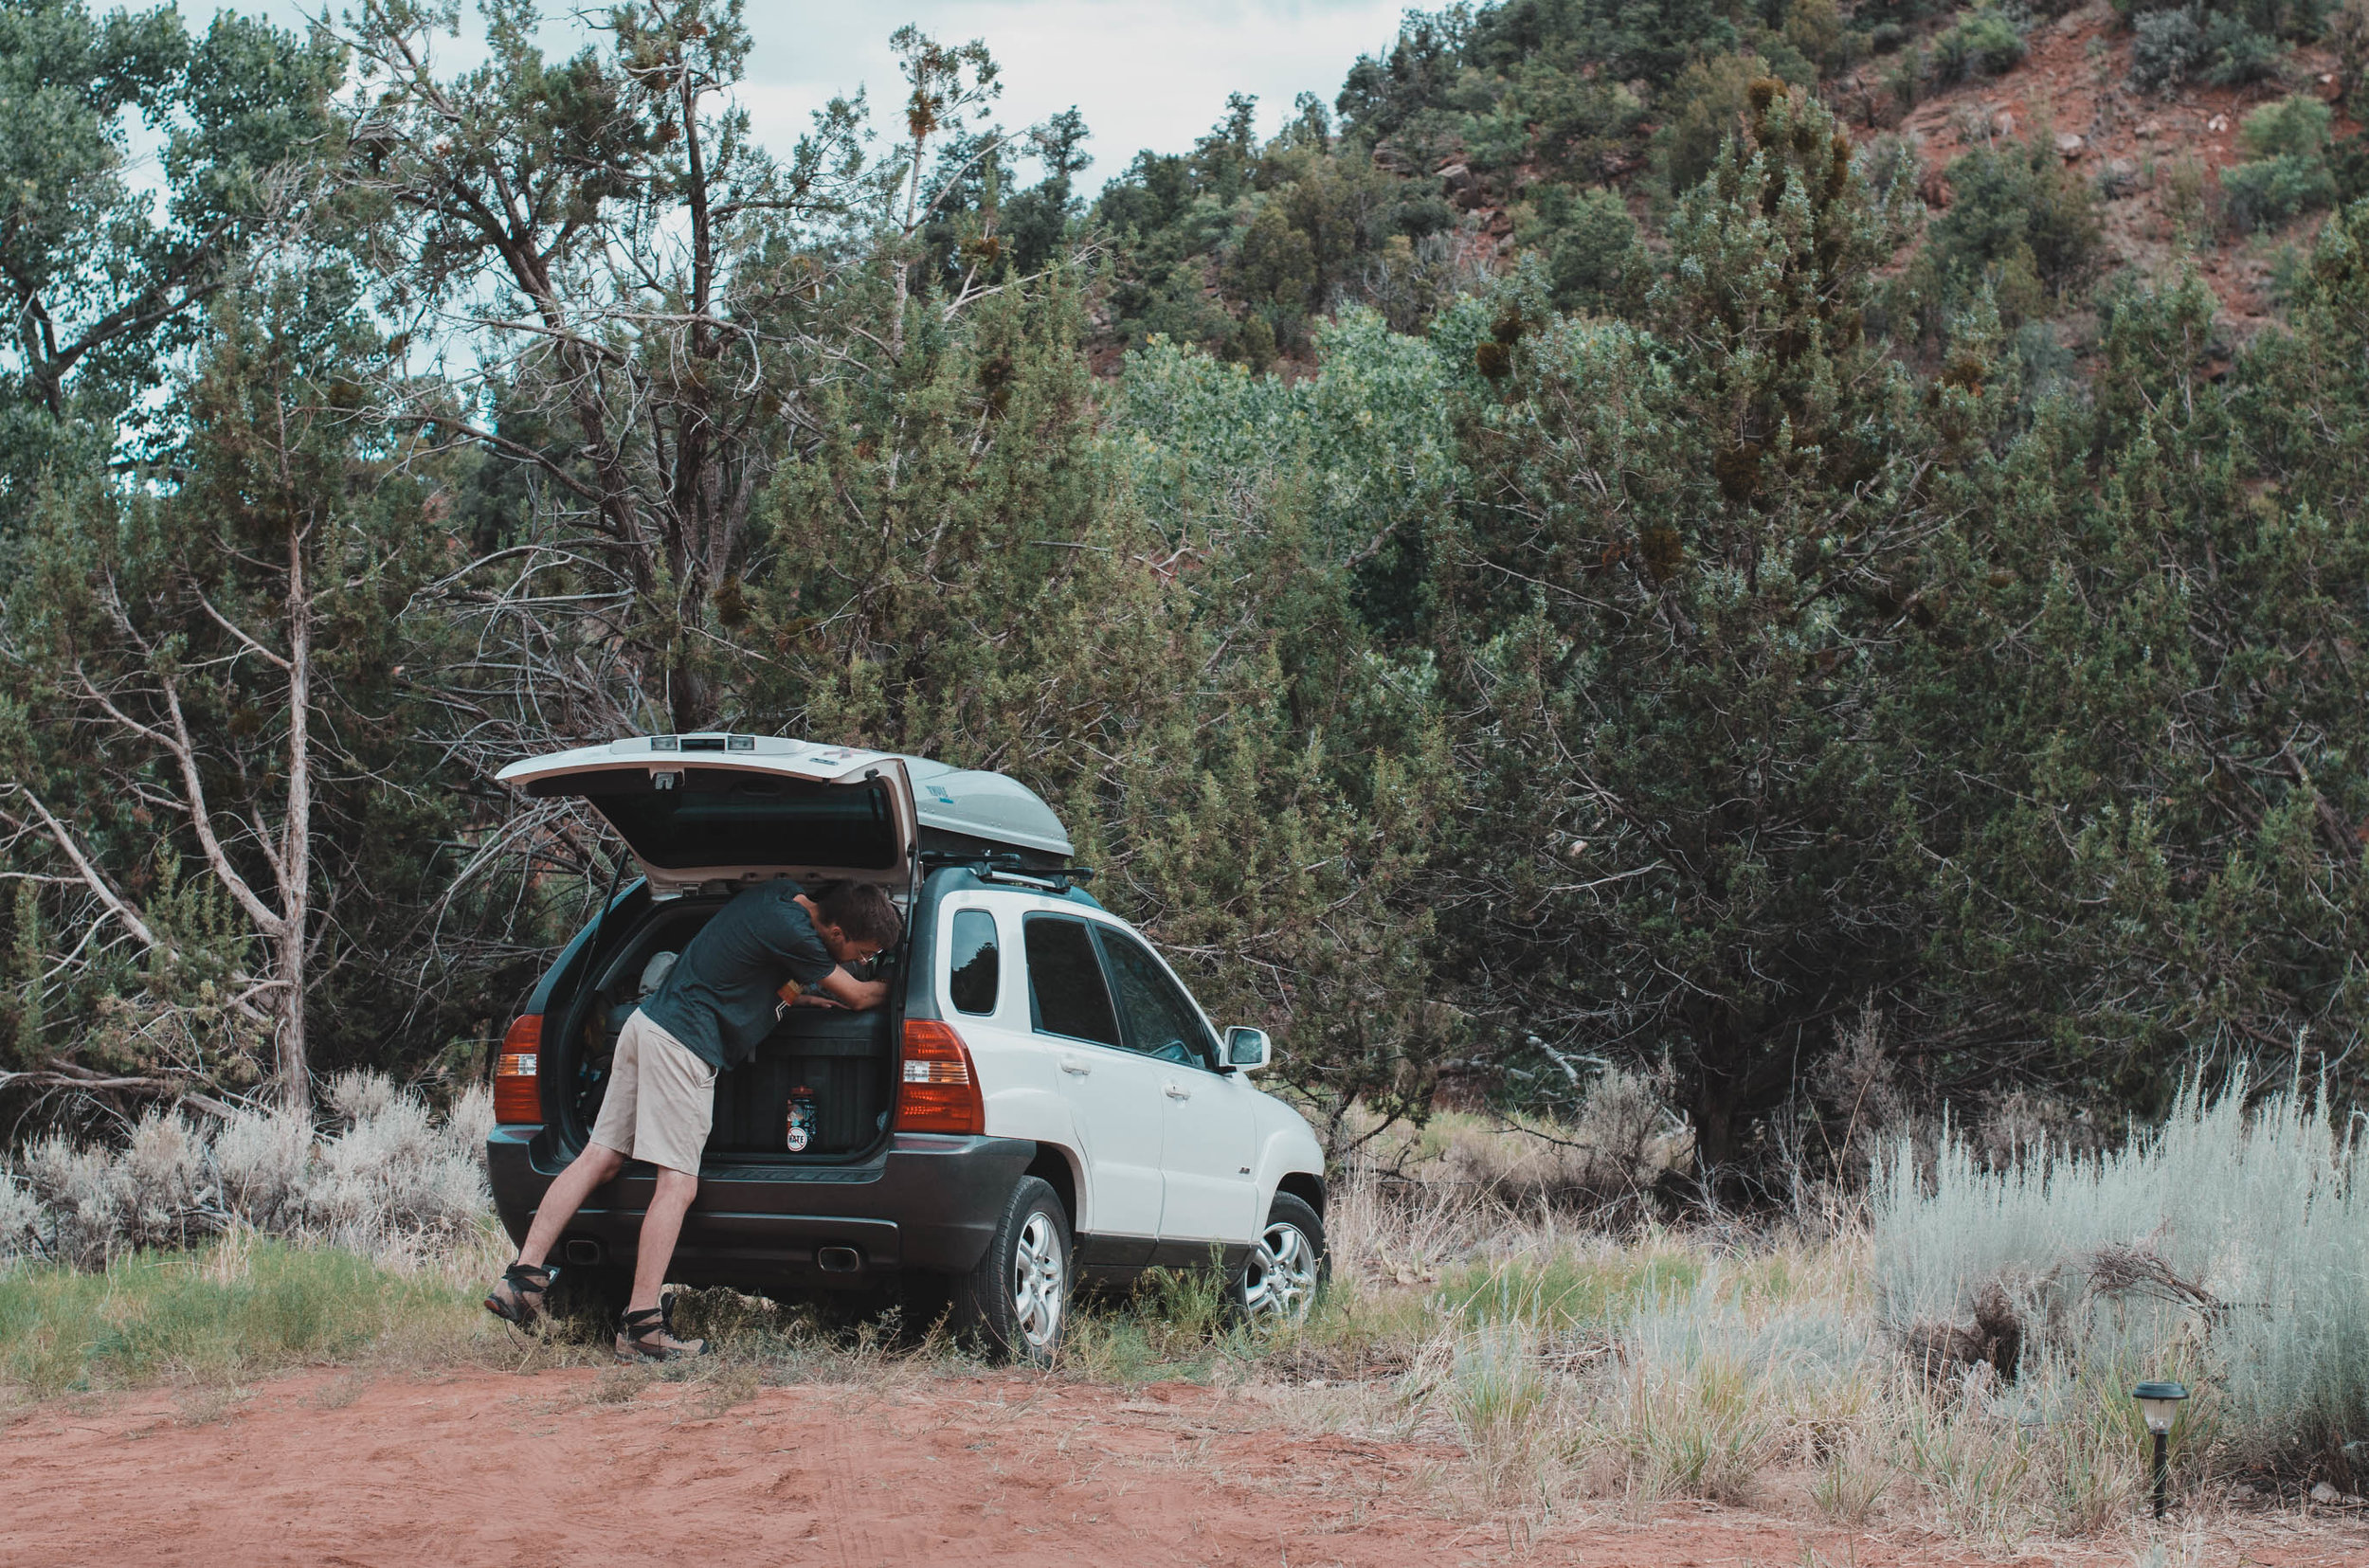 We got to park right outside our glamping tent in Utah